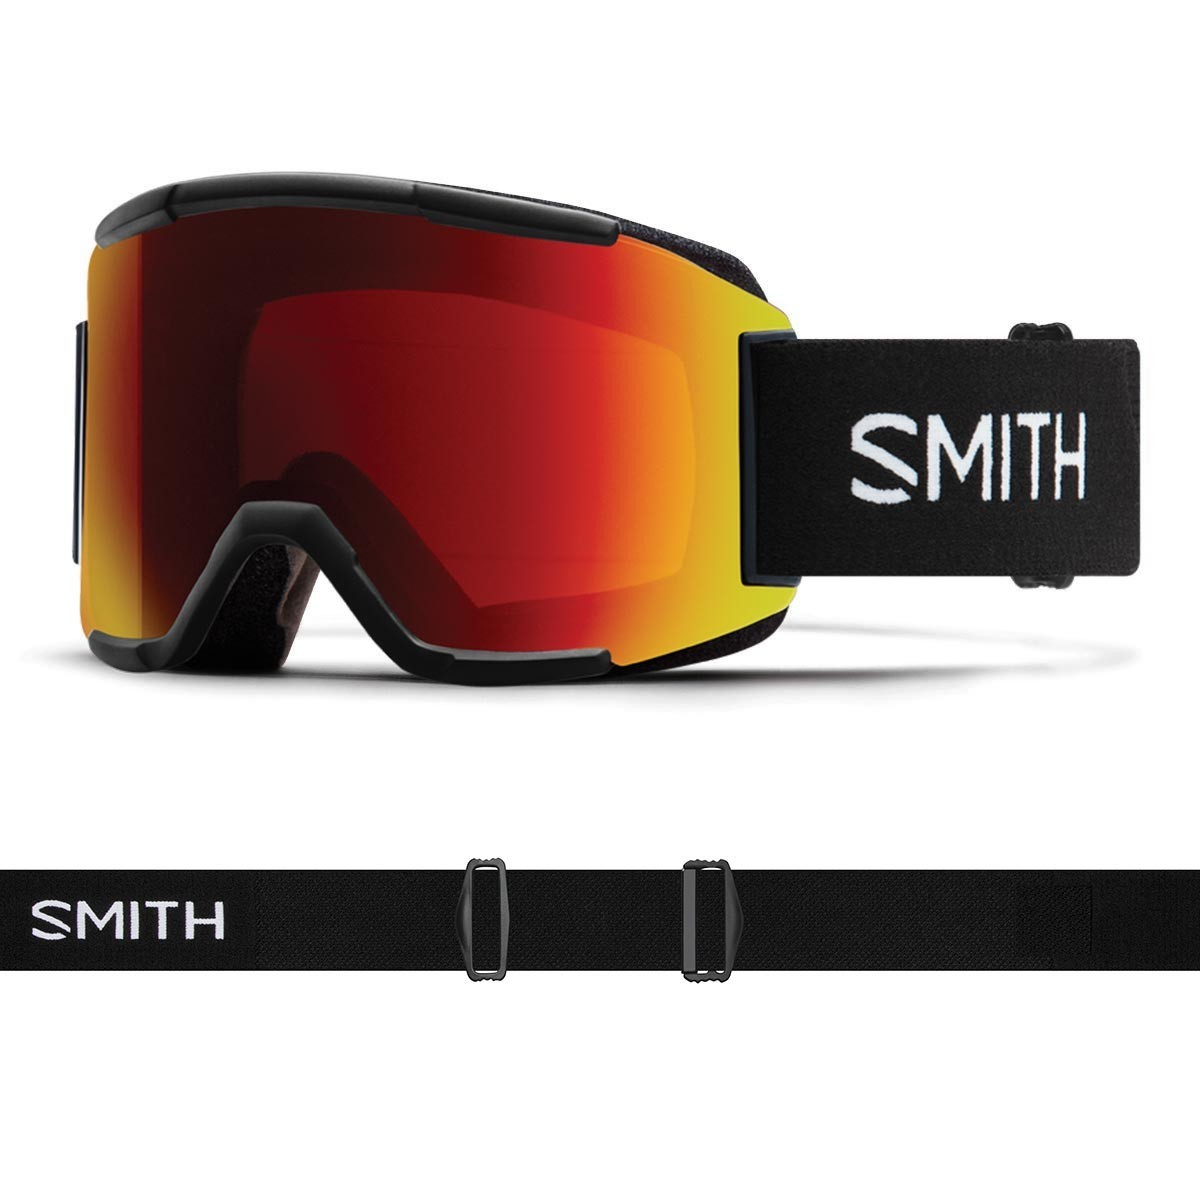 SMITH SQUAD black | S3-S2 CHROMAPOP Photochromic Red Mirror - Изображение - AQUAMATRIX